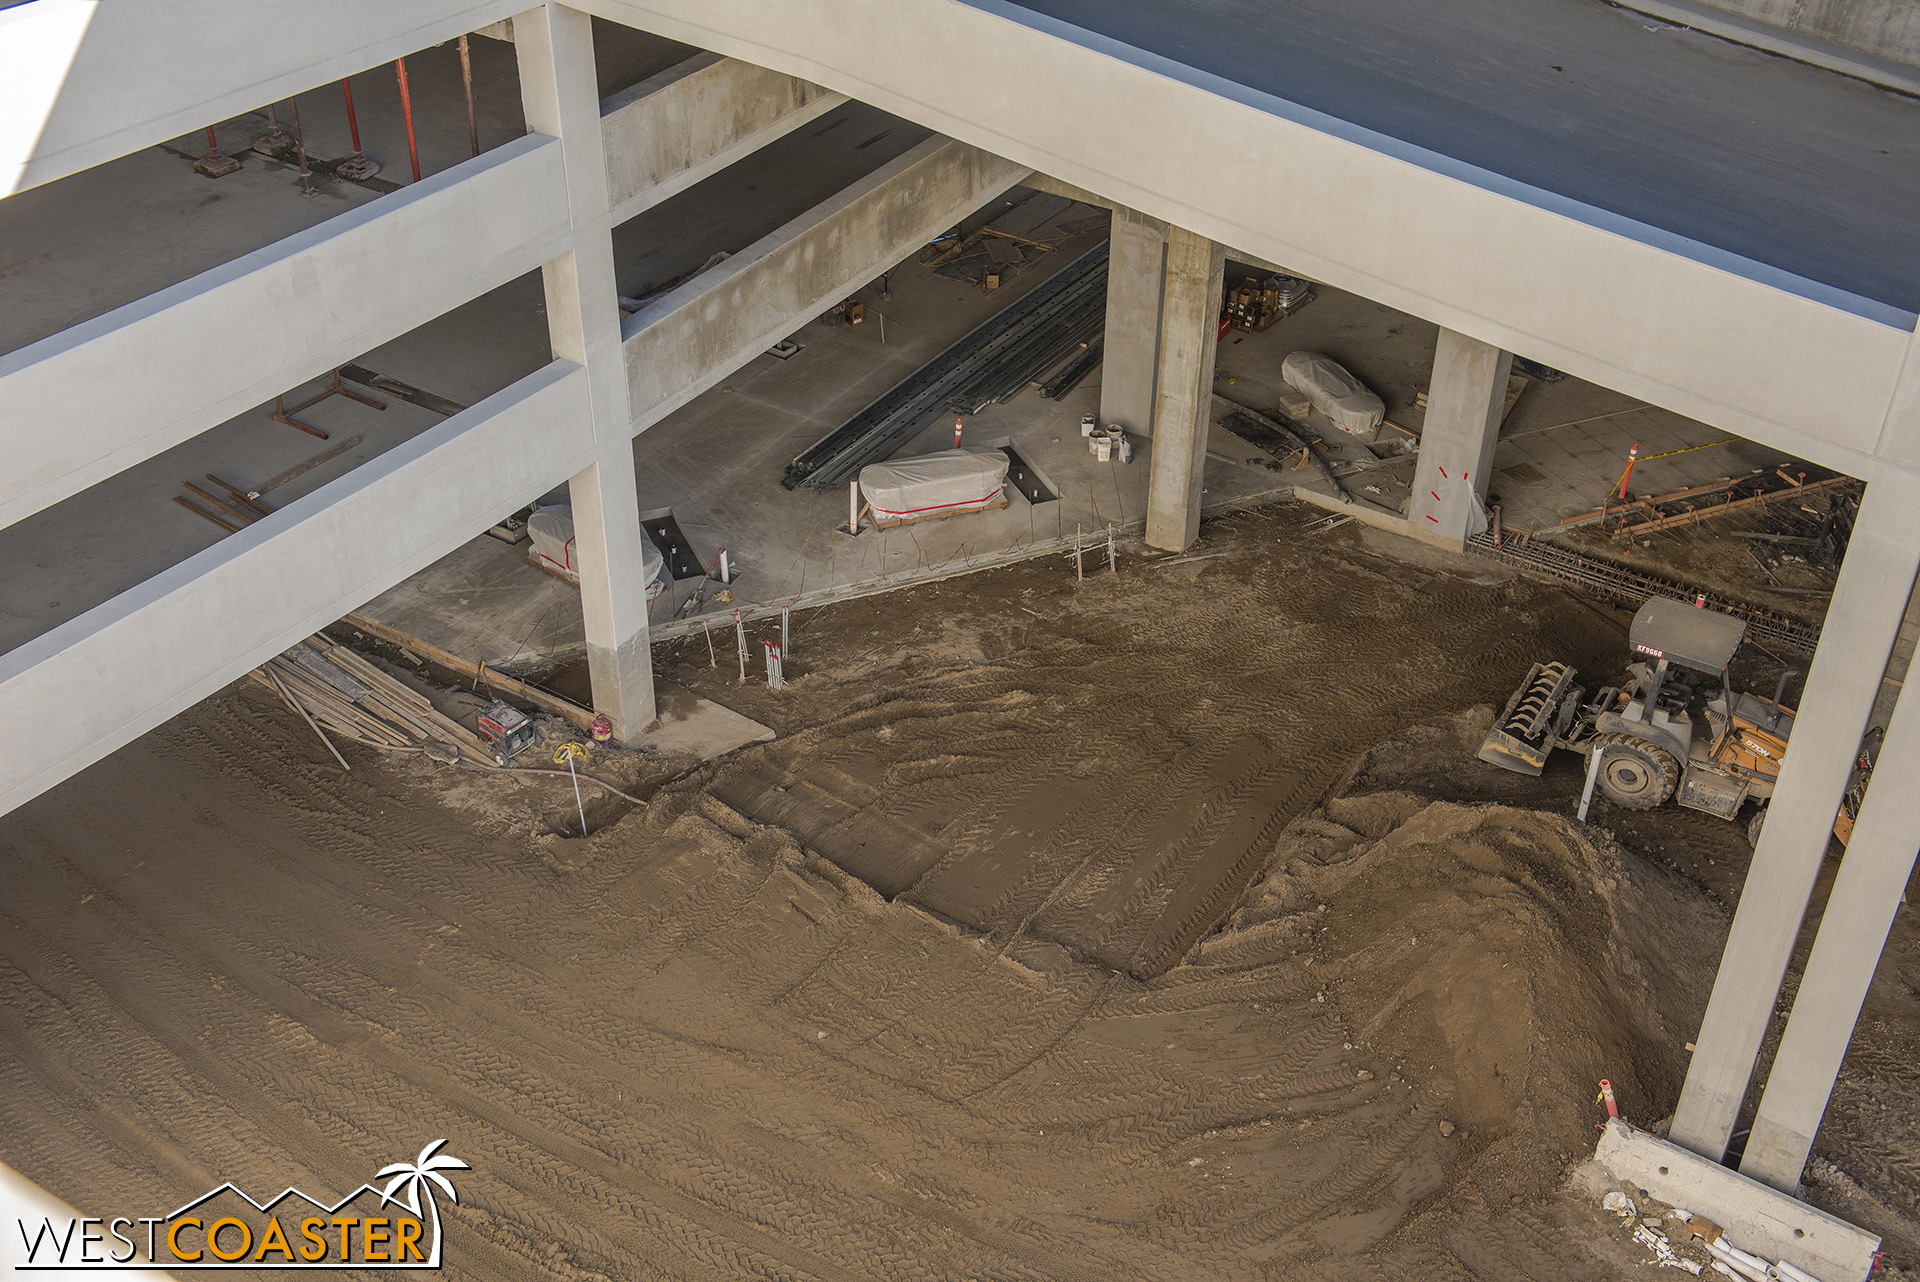 They're also starting to pour the concrete on the ground floor, finally.